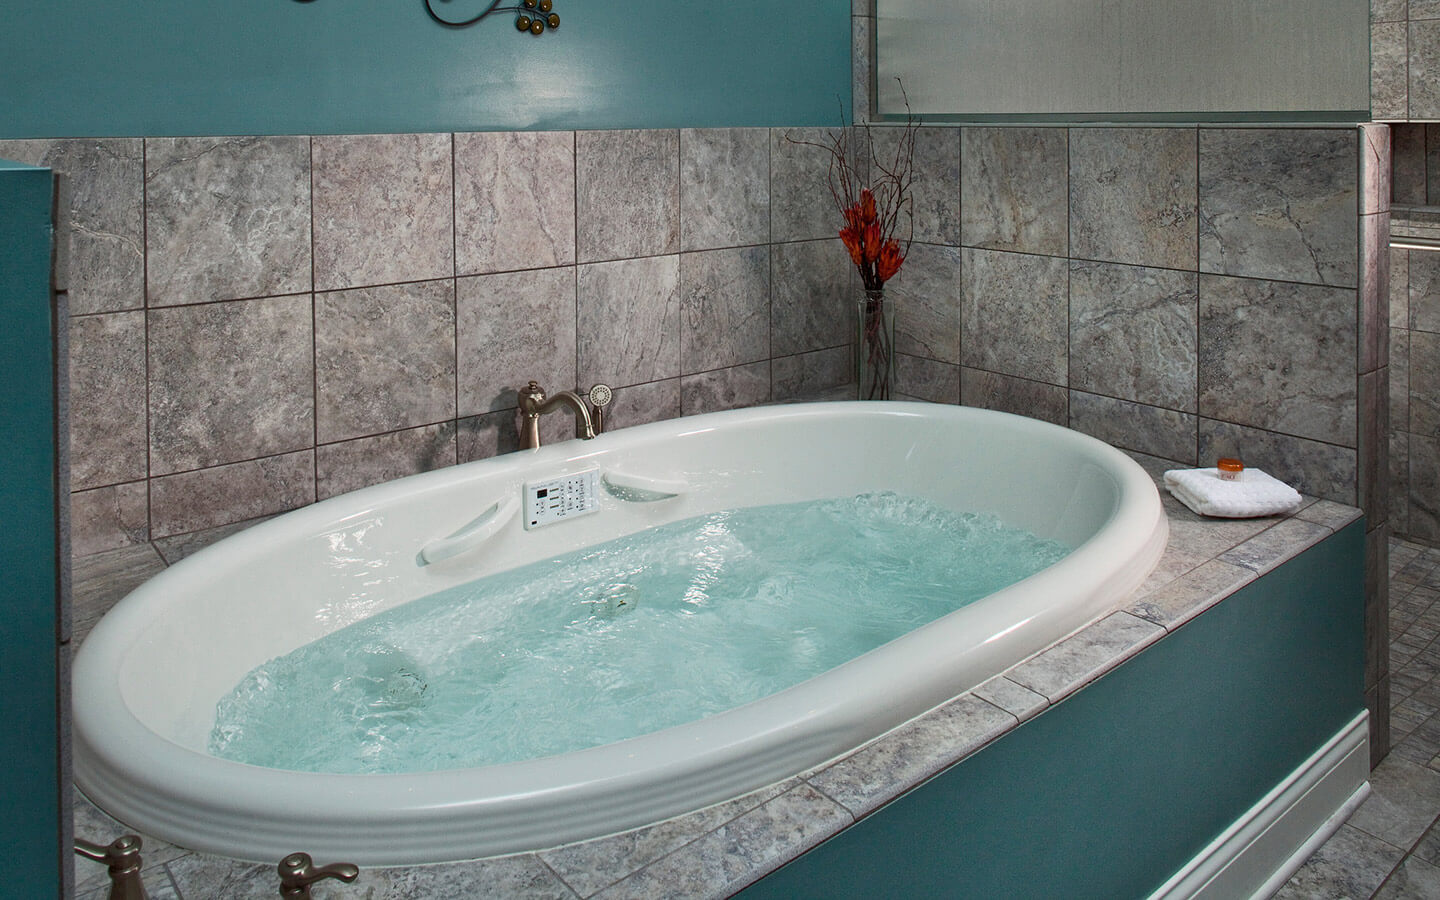 Camelot Suite spa tub